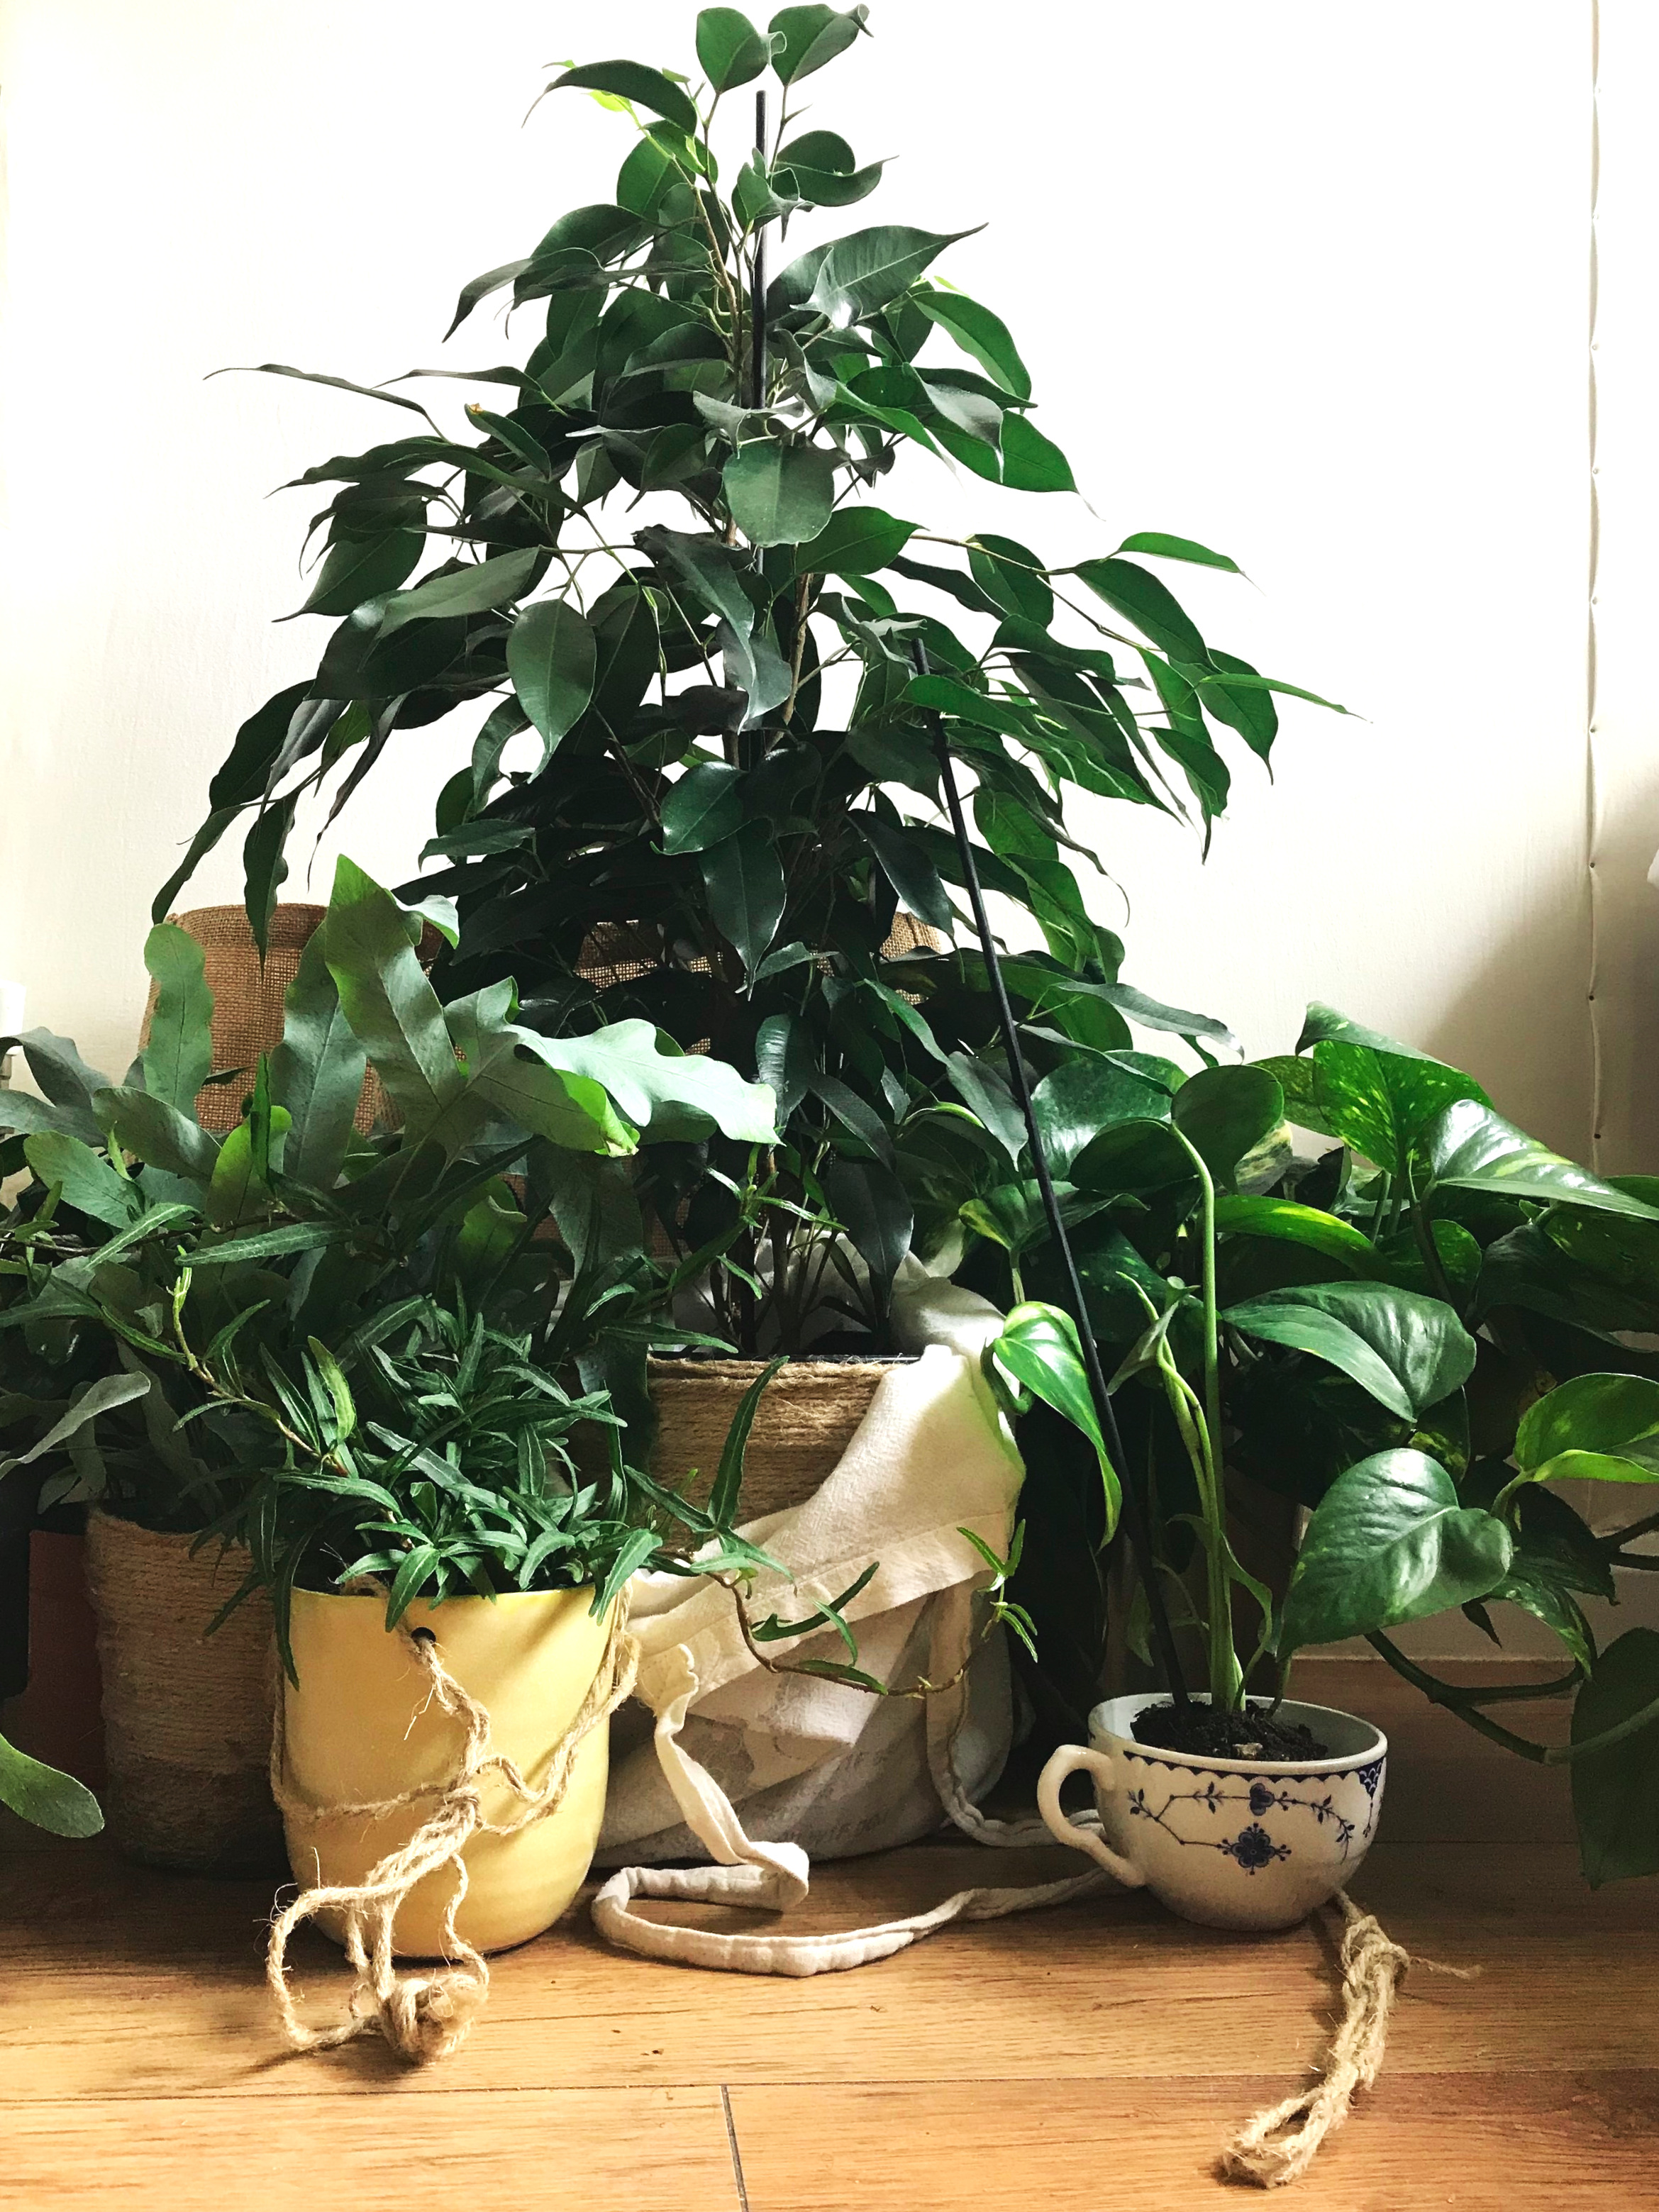 plant+shopping+by+csevenm.jpg